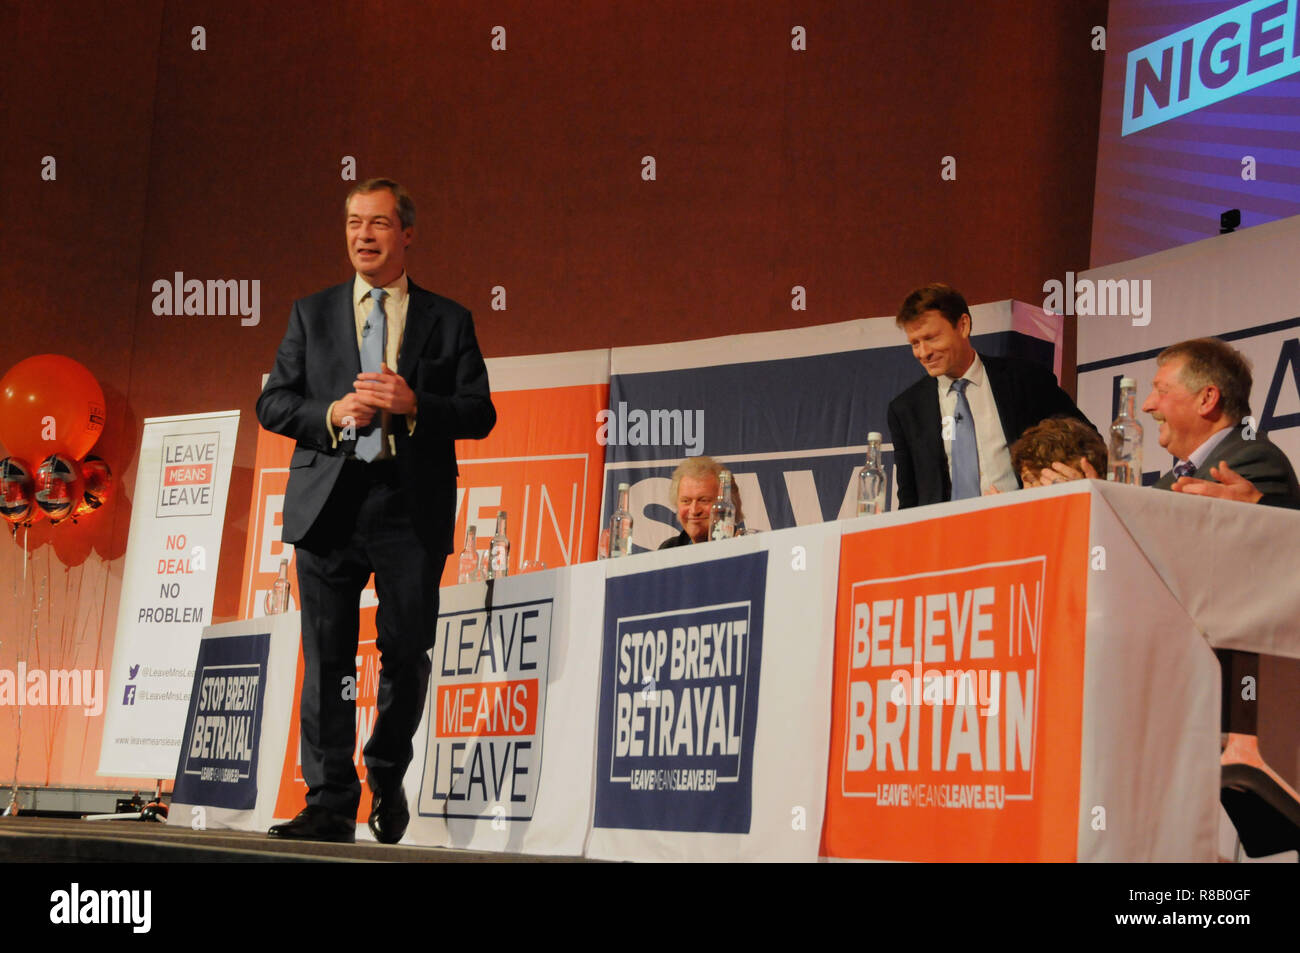 London, UK. 15th December, 2018. Nigel Farage gets ready to address the angry Brexit voters, unhappy with PM Theresa May's poor deal from the EU. Credit: Dario Earl/Alamy Live News Stock Photo